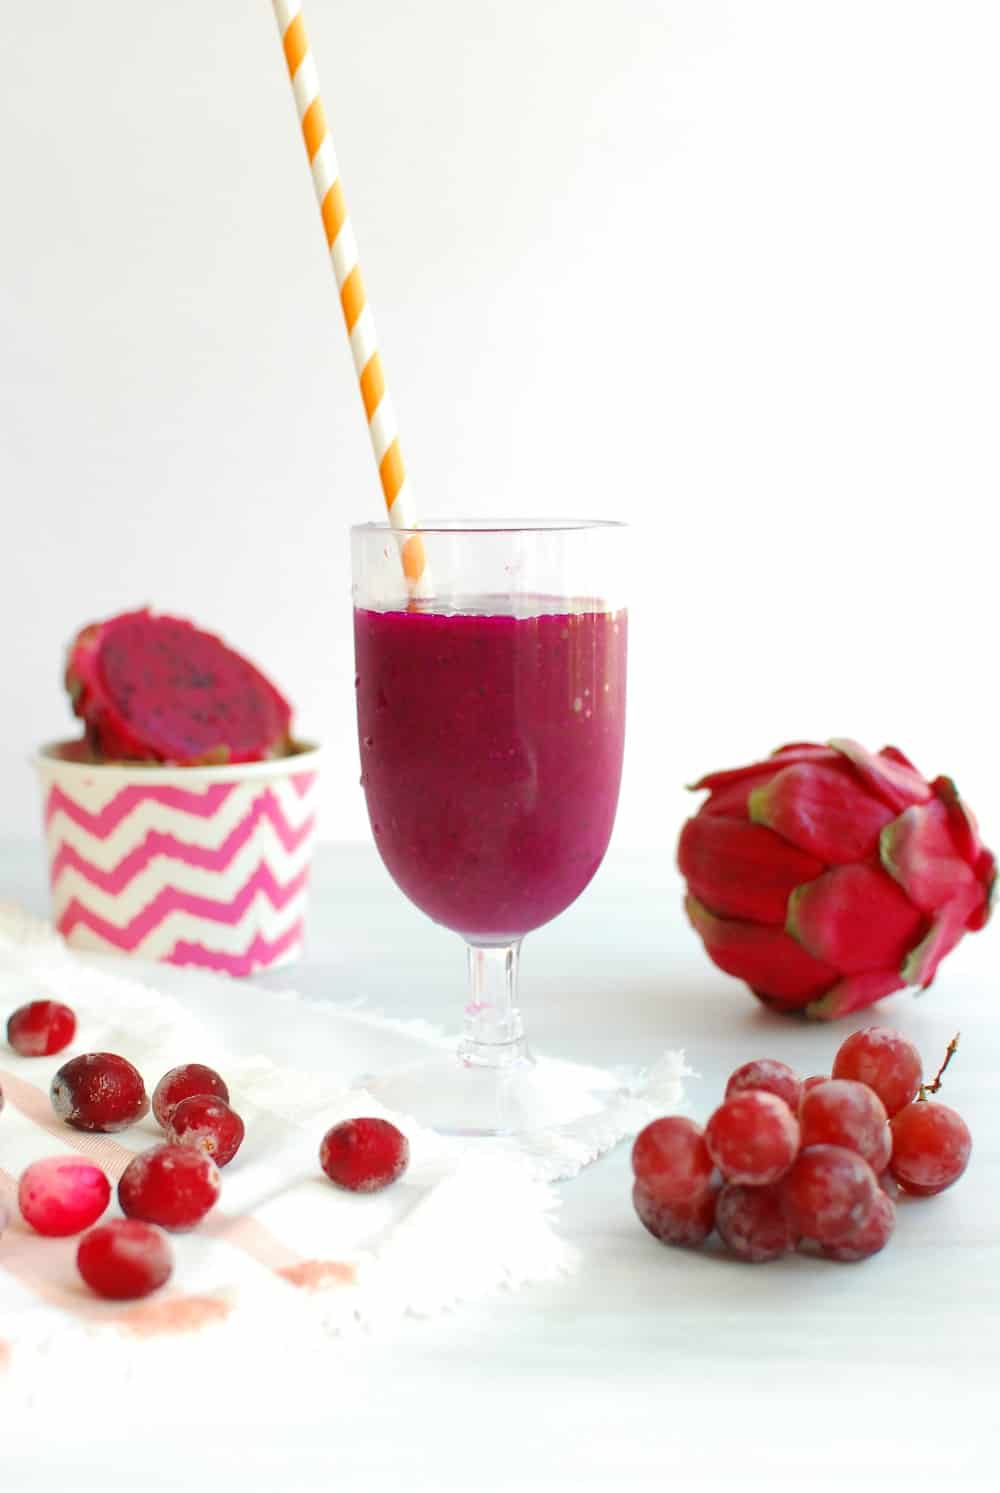 Dragon fruit smoothie in a glass with a straw